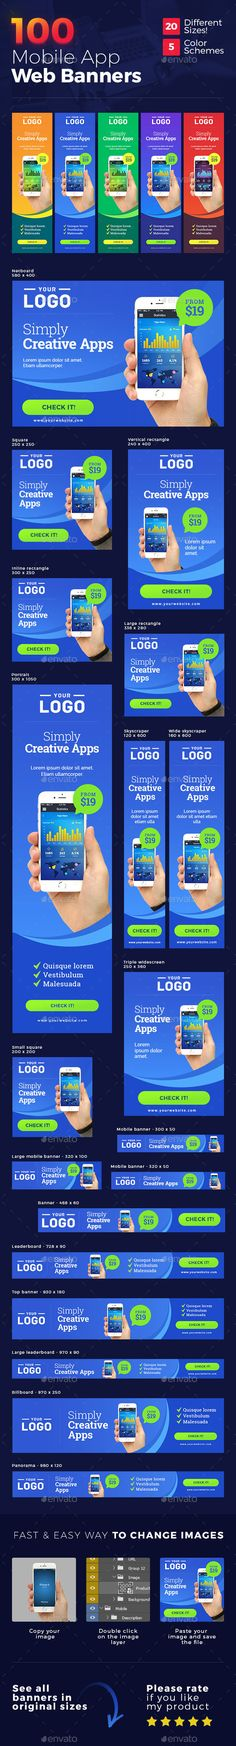 Mobile App Web Banners — Photoshop PSD #web banners #mobile • Download ➝ https://graphicriver.net/item/mobile-app-web-banners/19210566?ref=pxcr